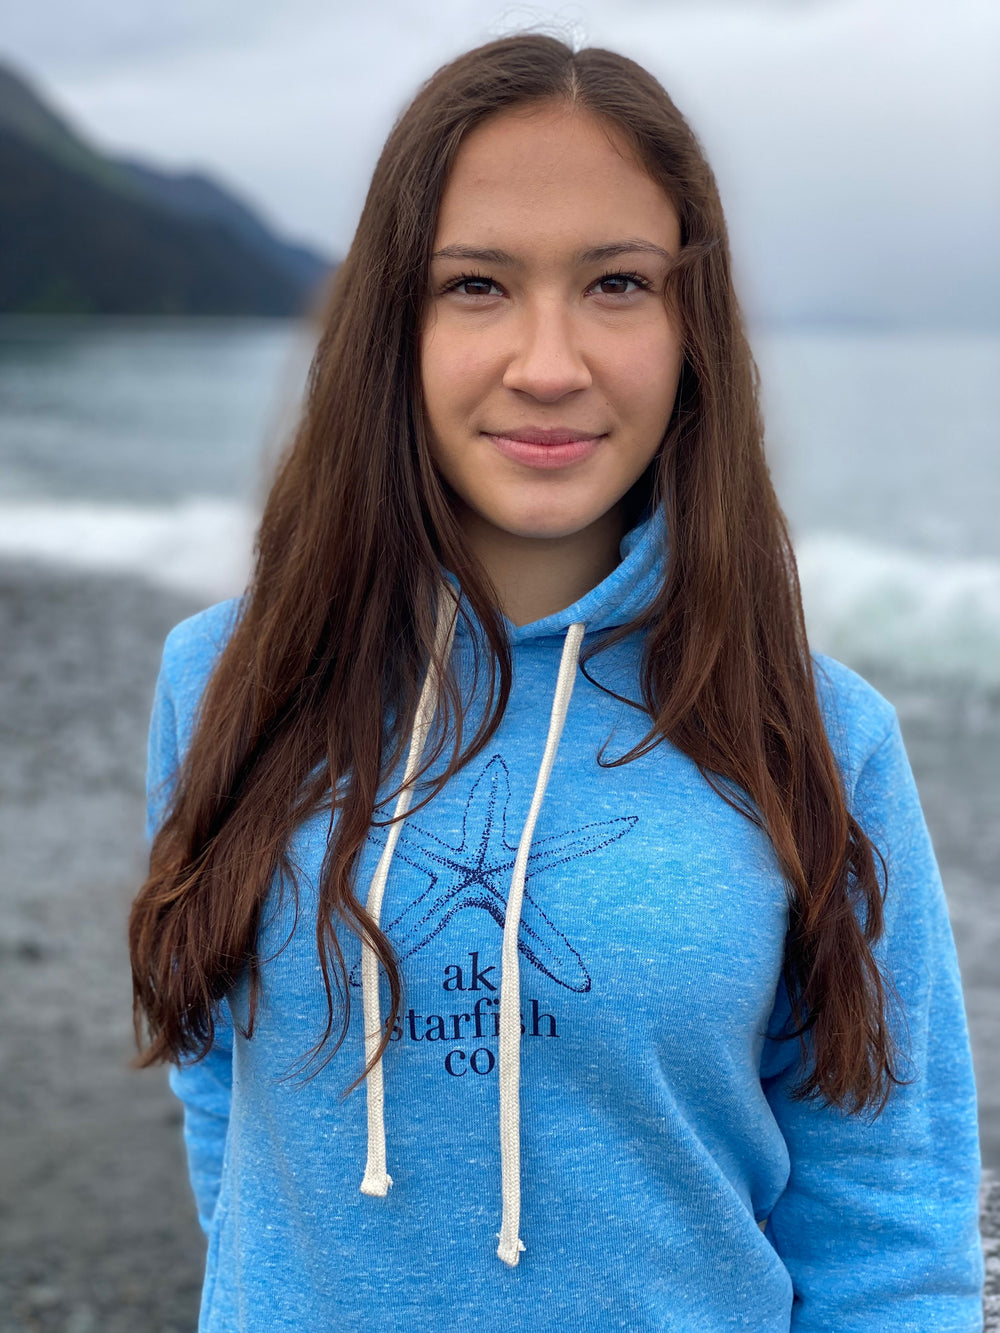 Forgetmenot Blue AK Starfish Co. Triblend Pullover Hoody